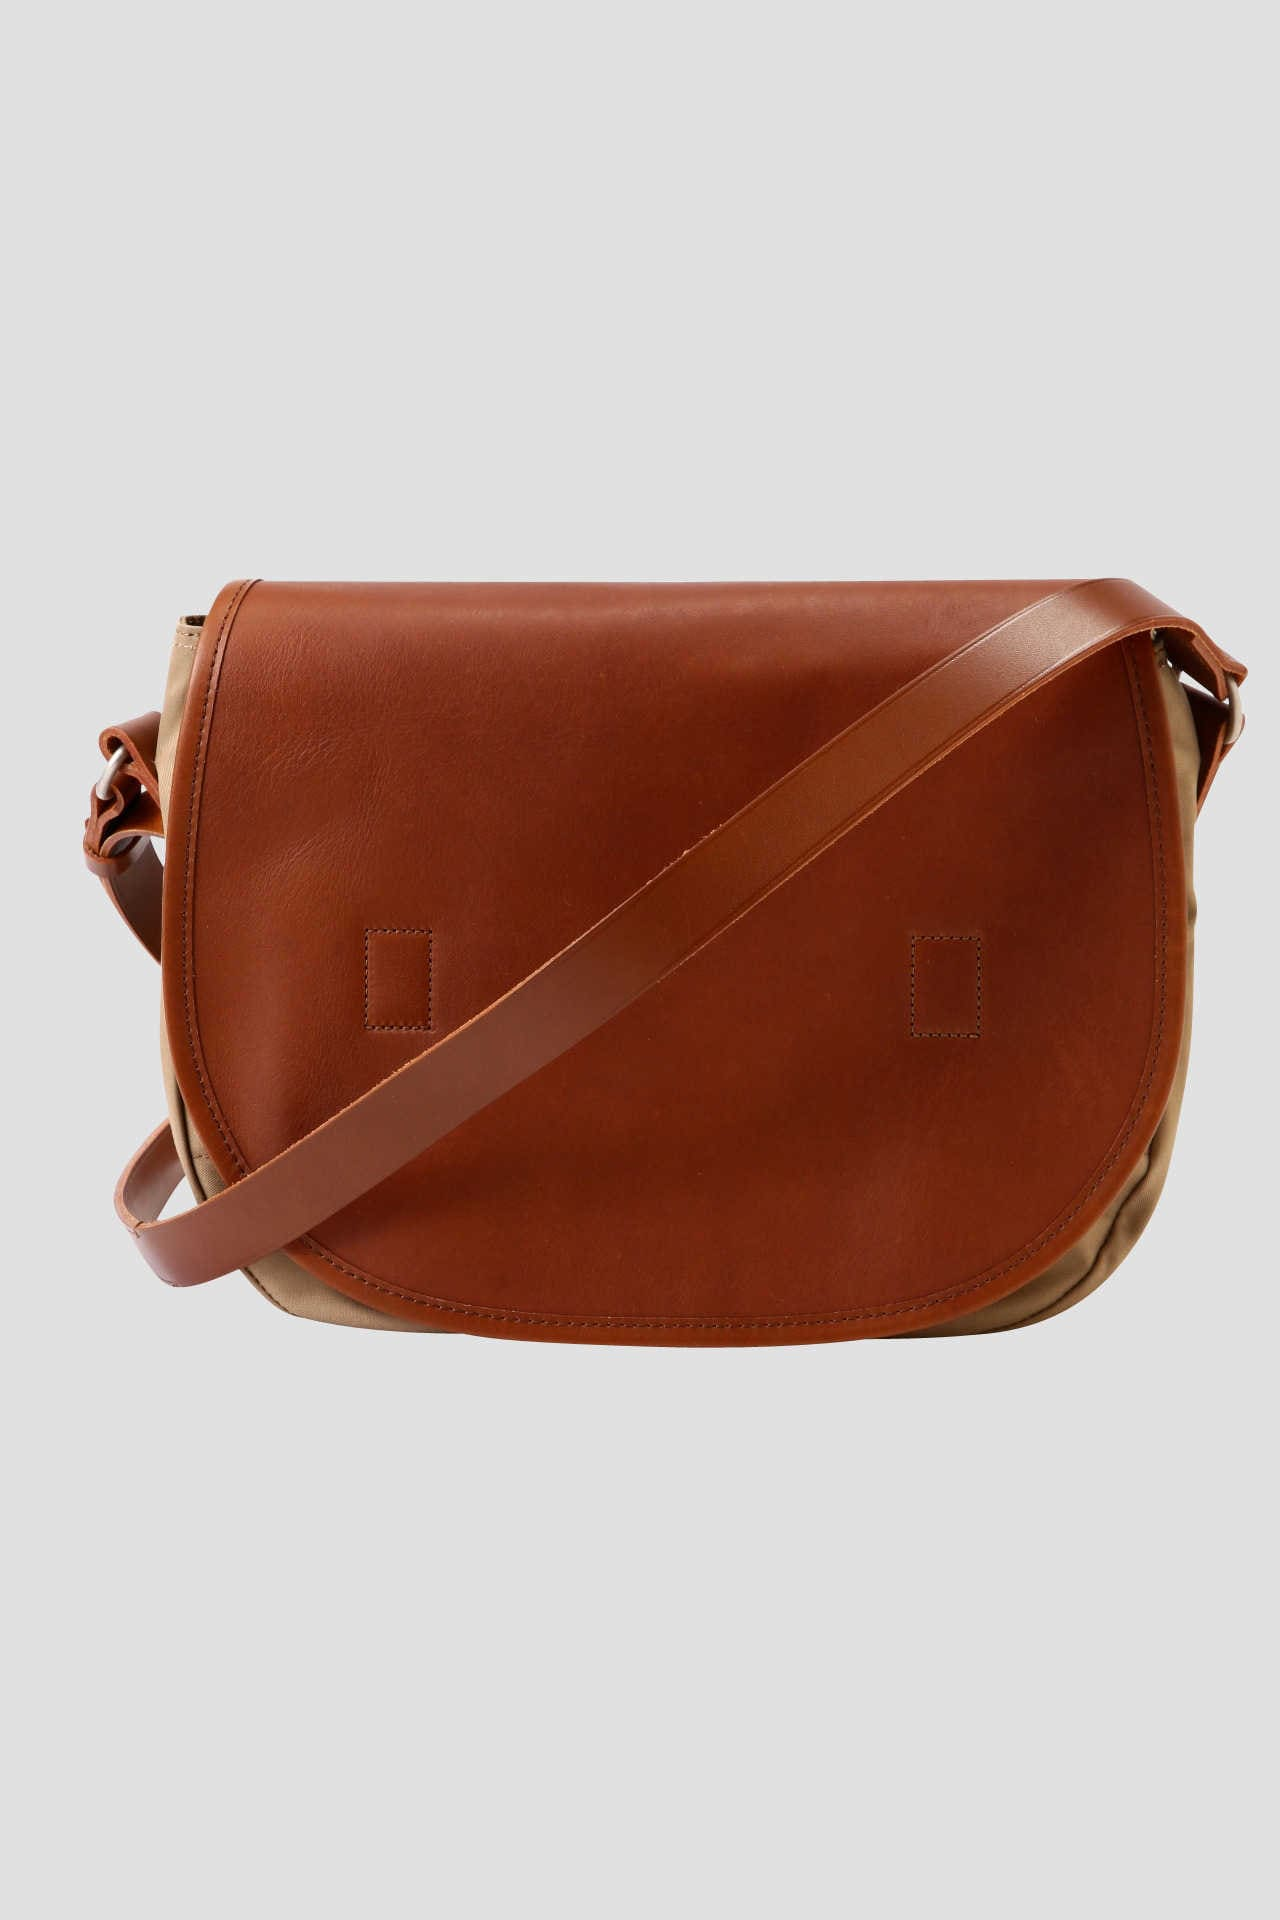 COTTON LEATHER SATCHEL1